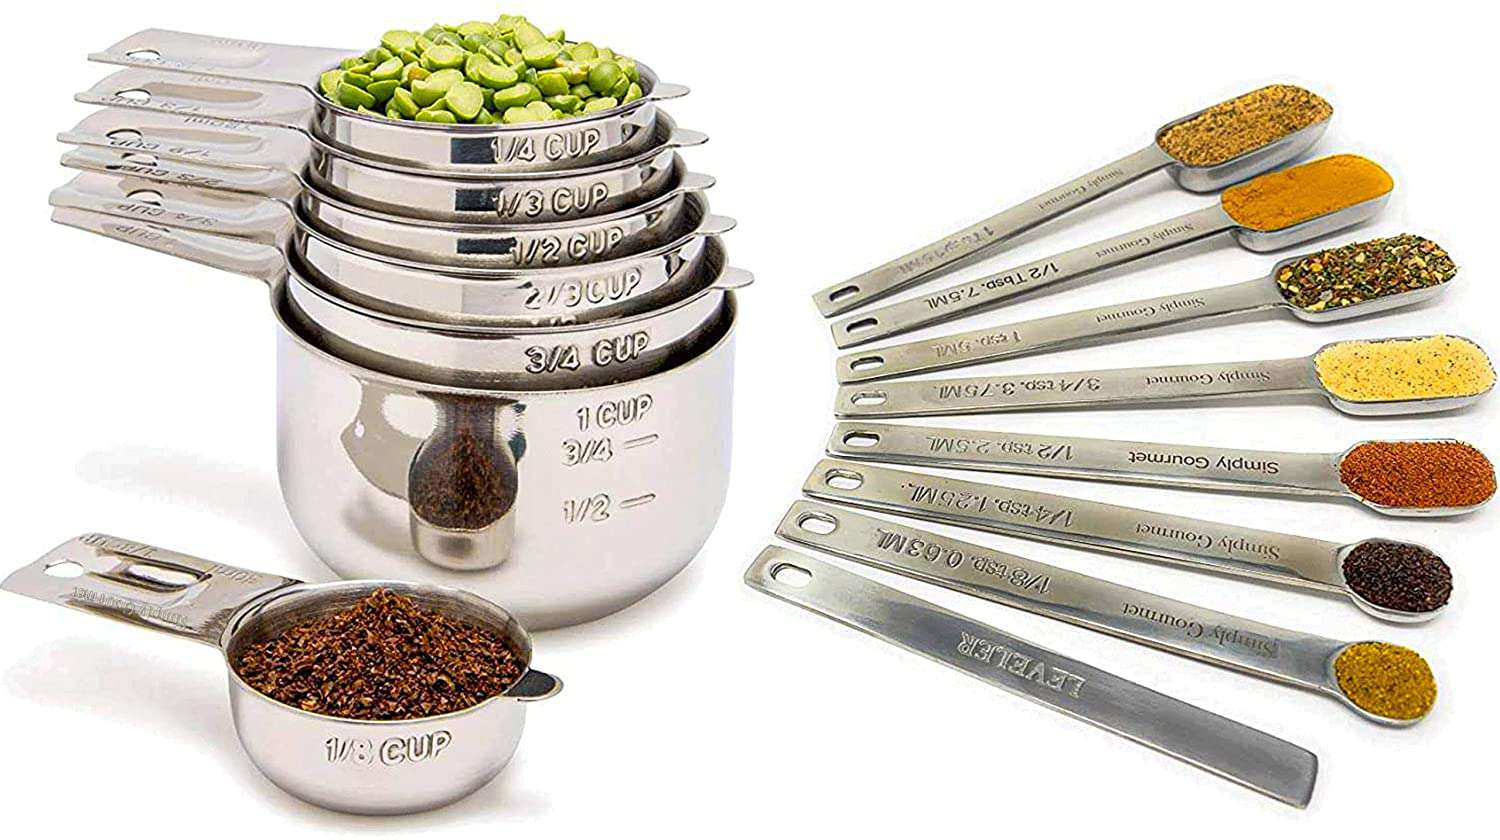 Simply Gourmet Measuring Cups and Spoons Set